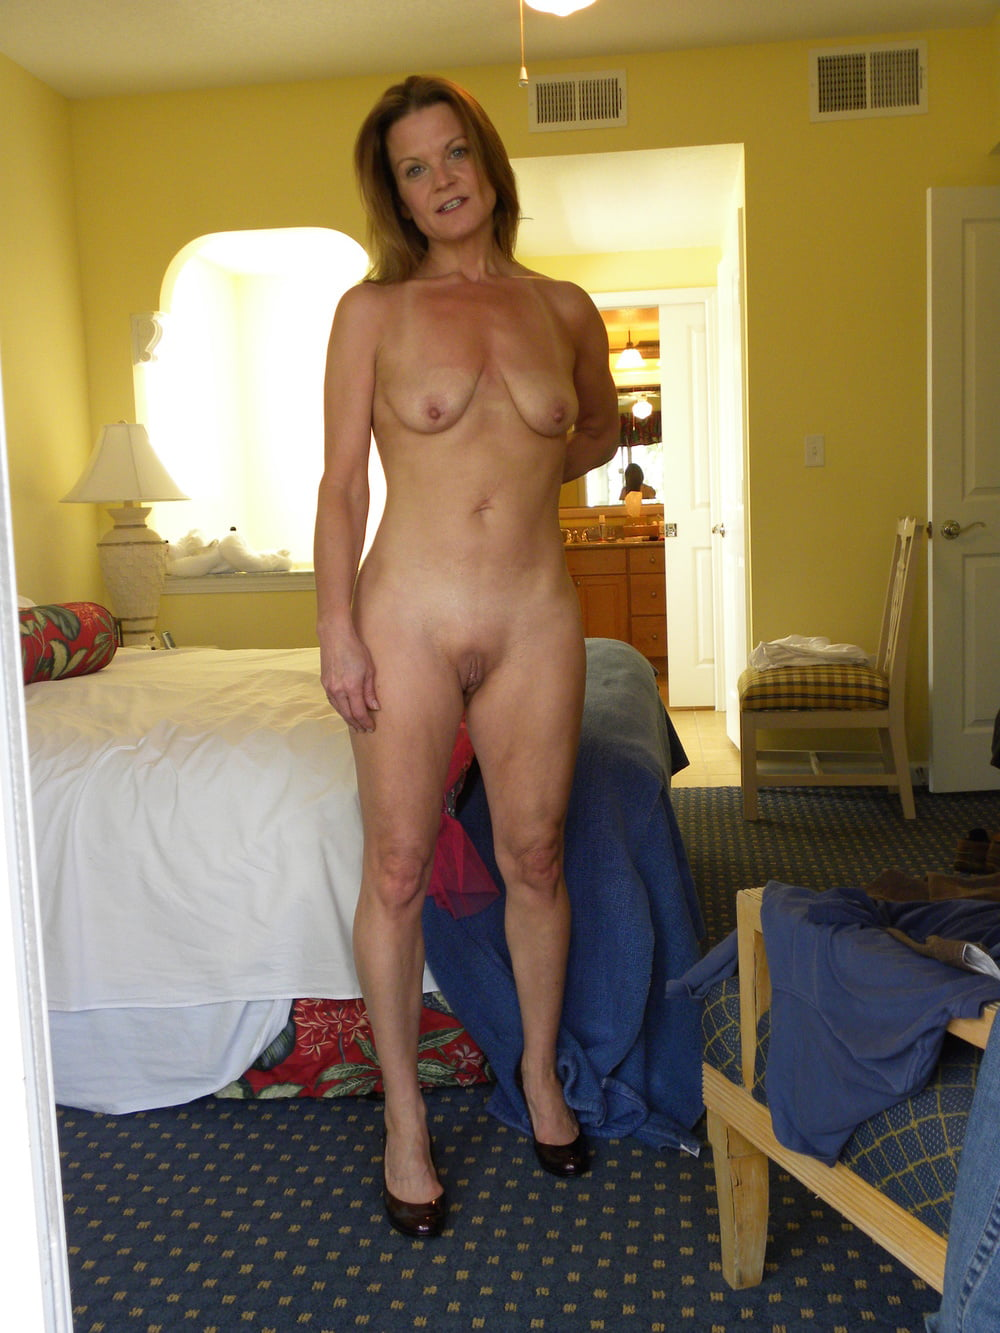 Free photos of nude wife